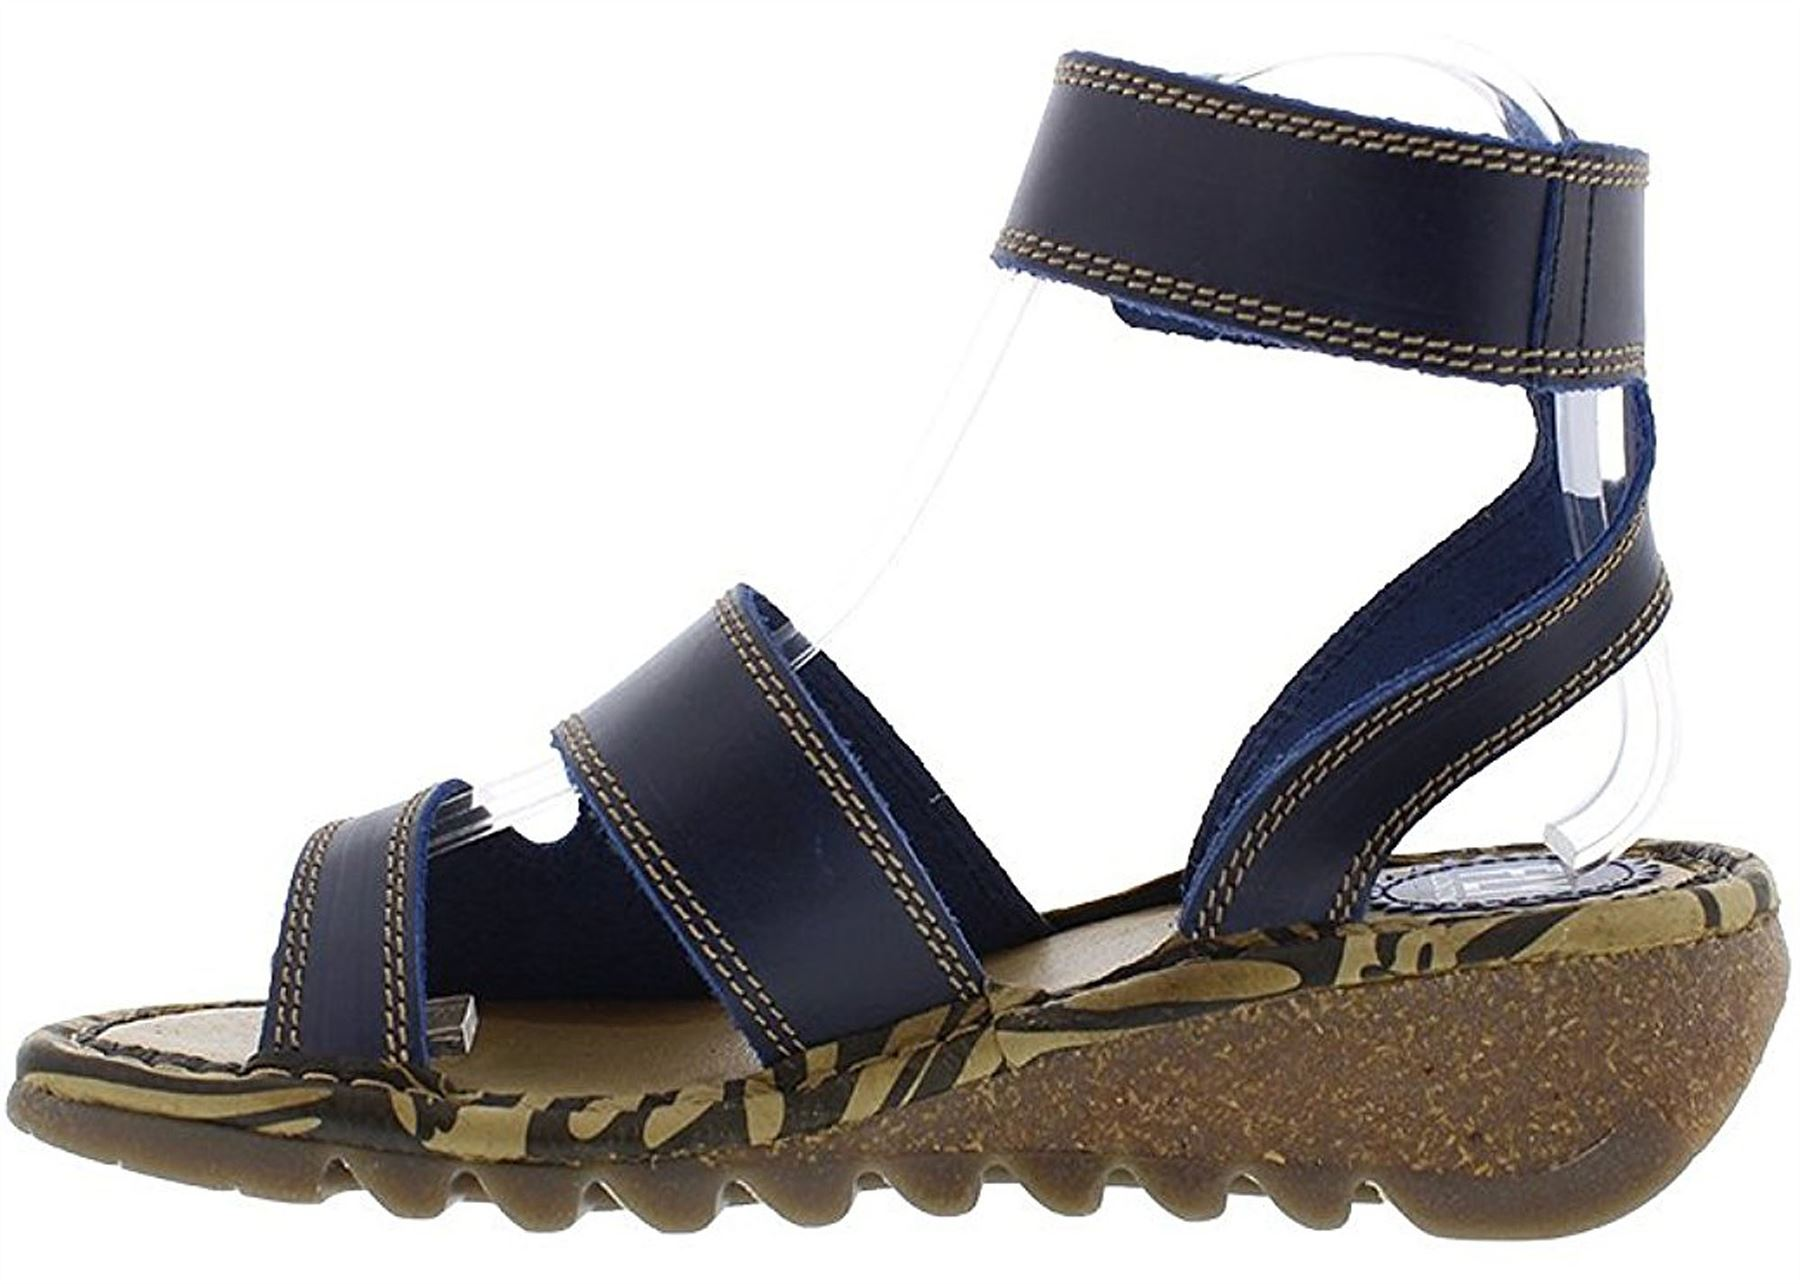 Fly-London-TILY722FLY-Ladies-Strappy-Gladiator-Style-Leather-Wedge-Sandals thumbnail 9